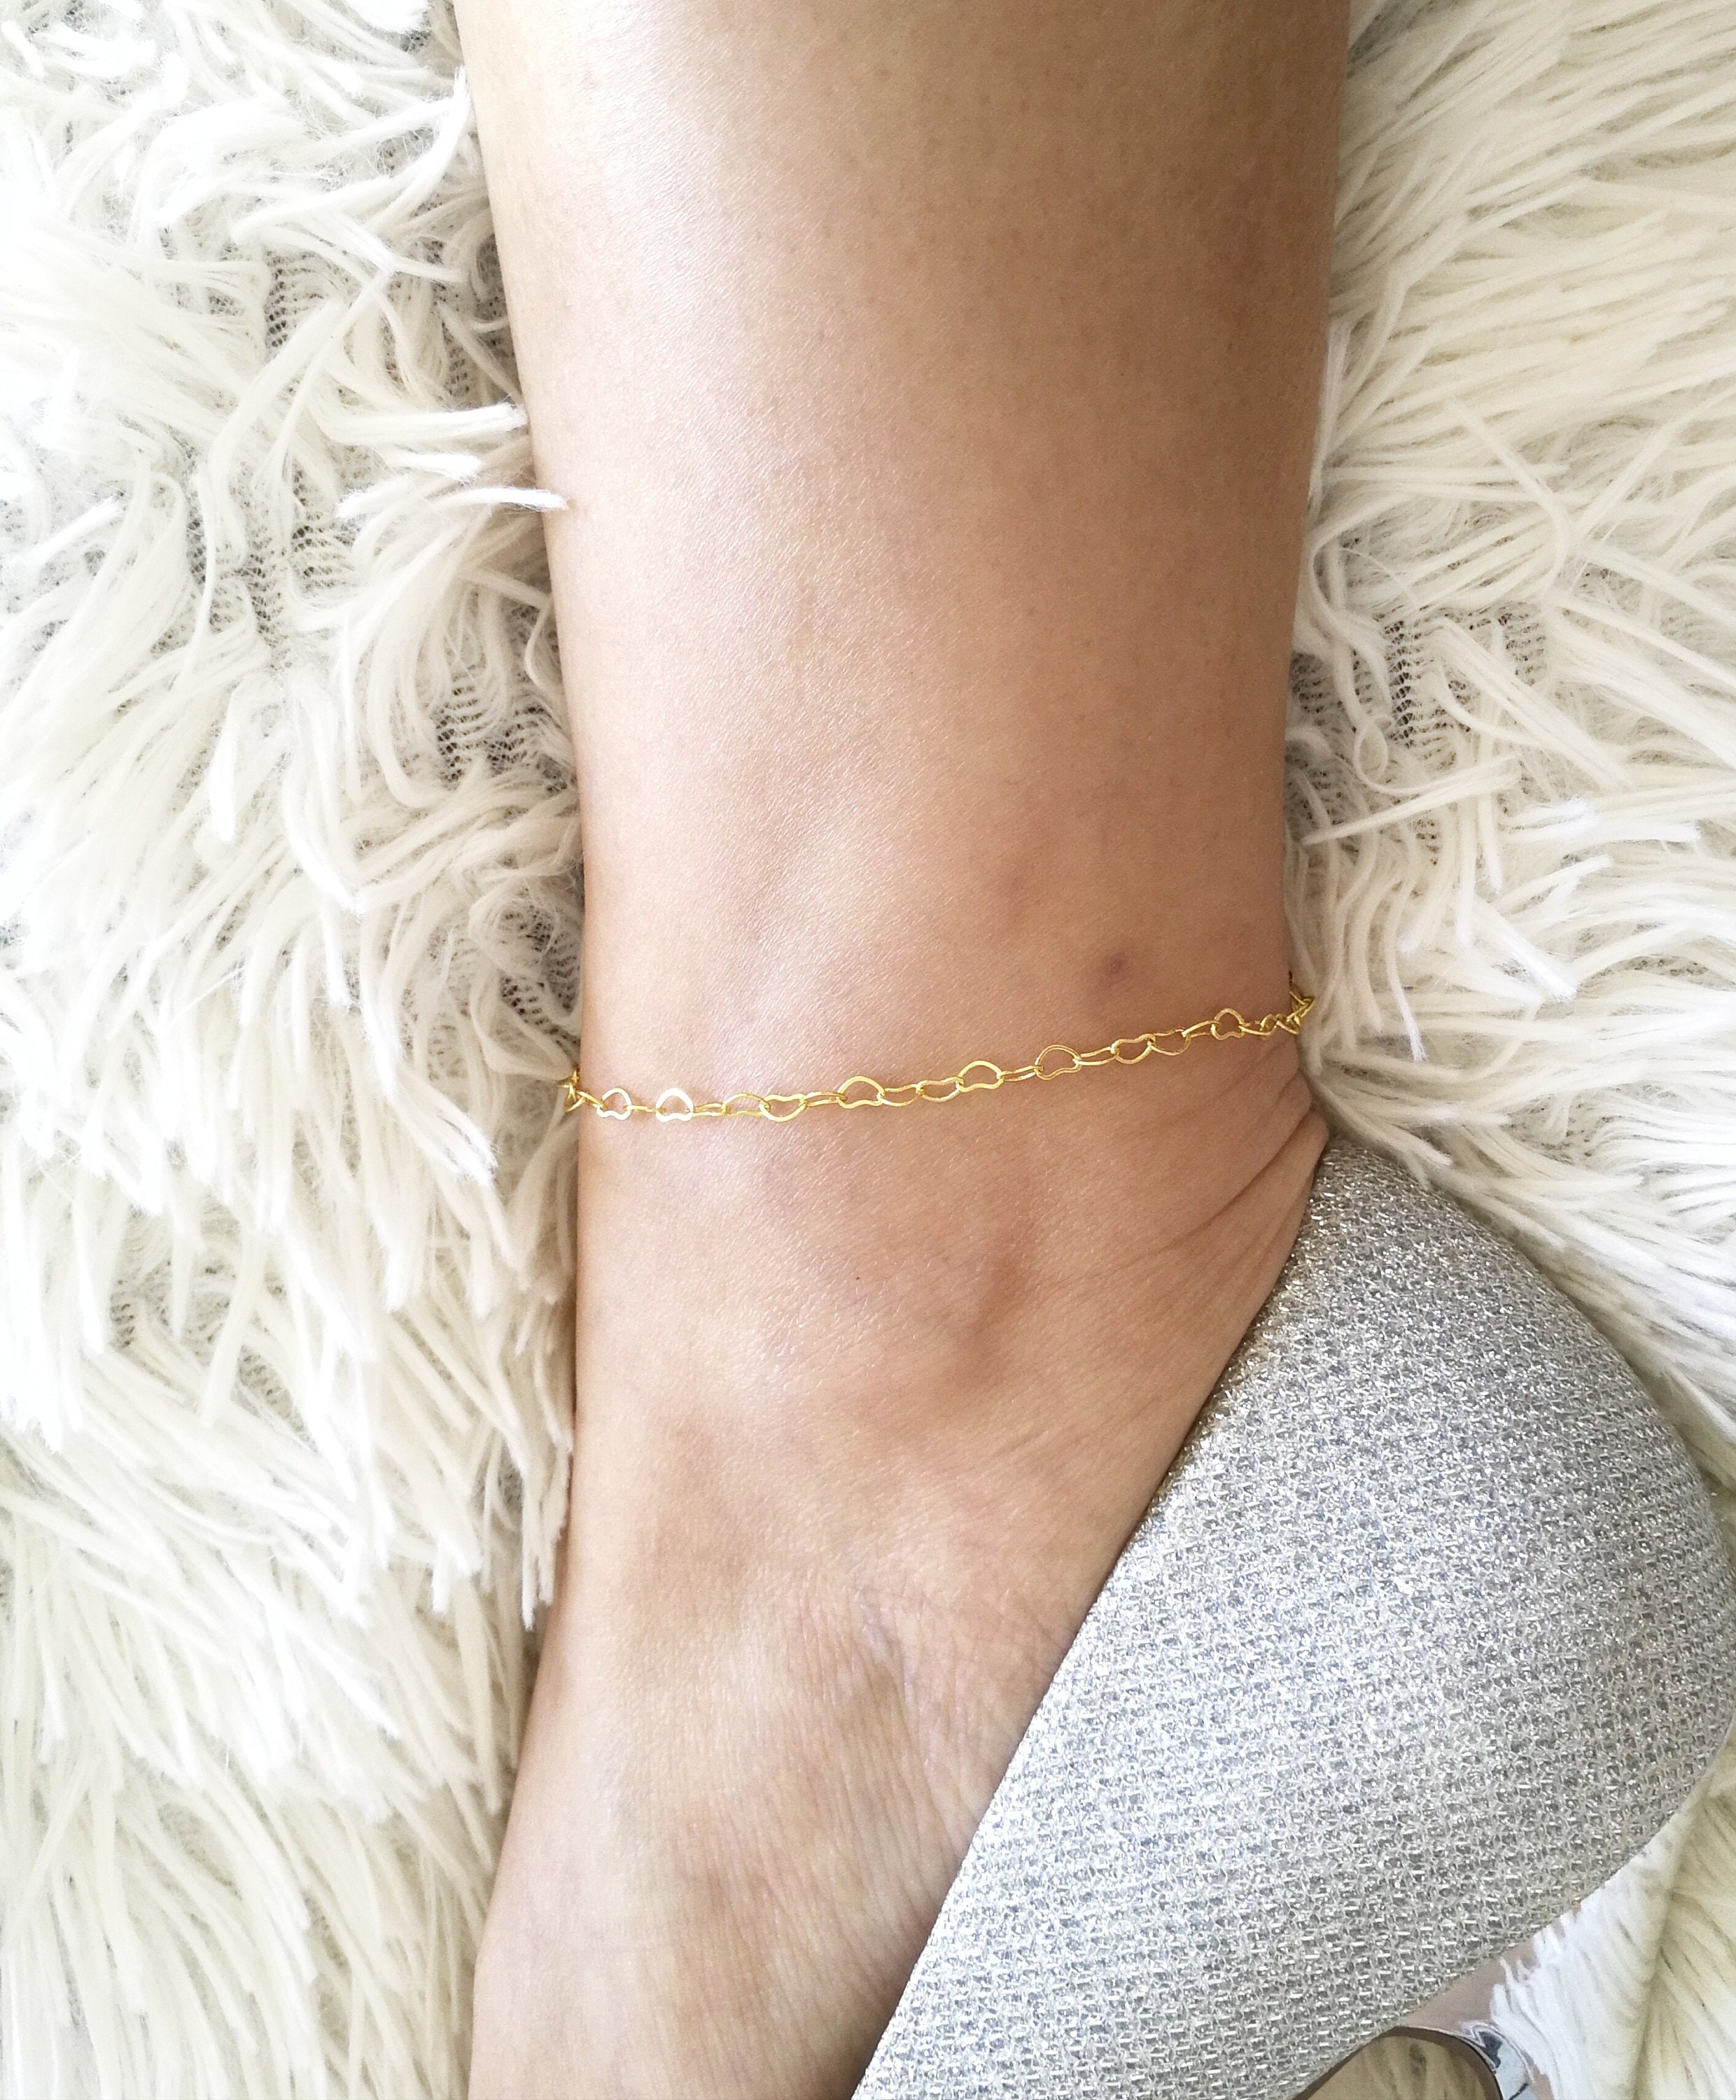 beaded eye evil anklet solid r rose chain gold